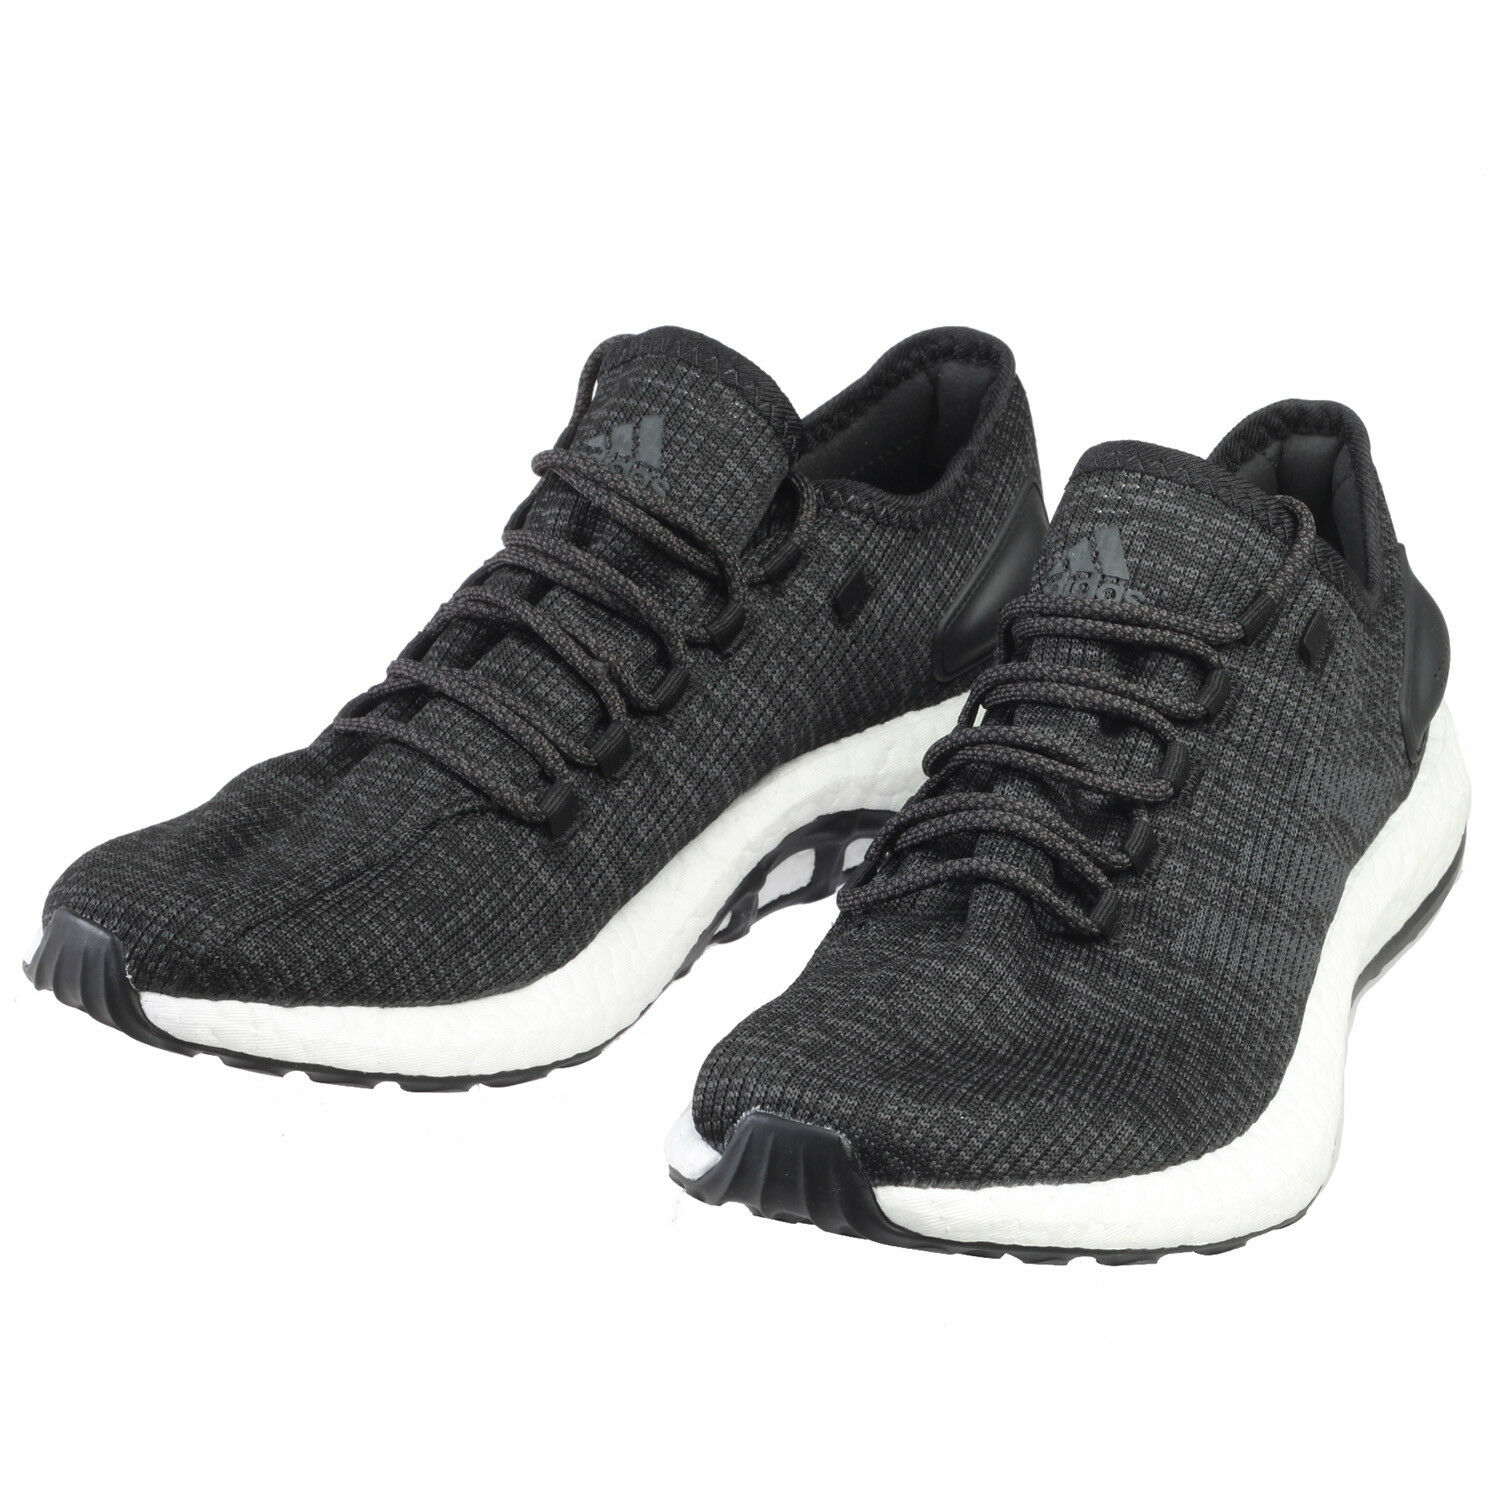 ADIDAS Men's Adidas Pureboost Running Shoes BA8899 Mens BLACK Price reduction